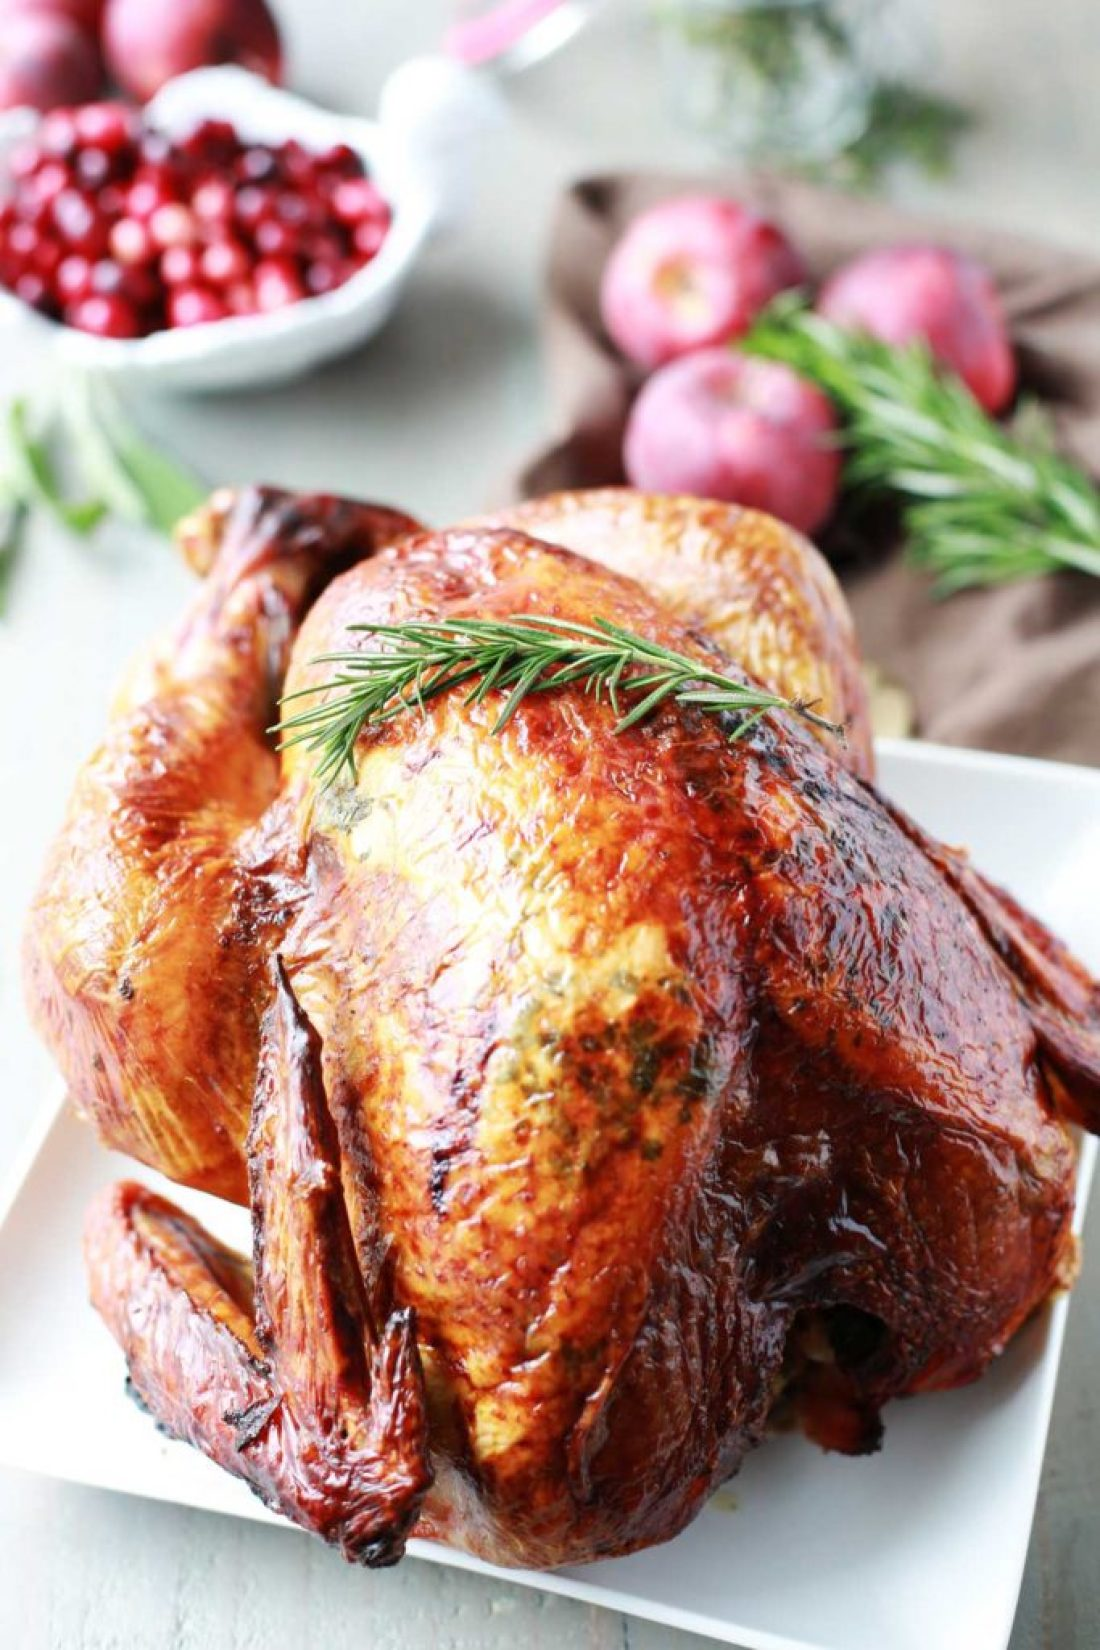 Turkey recipe for an Aromatic Lemon Apple Herb Turkey is ridiculously moist and tender, and will be the star of the show for your Holiday Dinner!